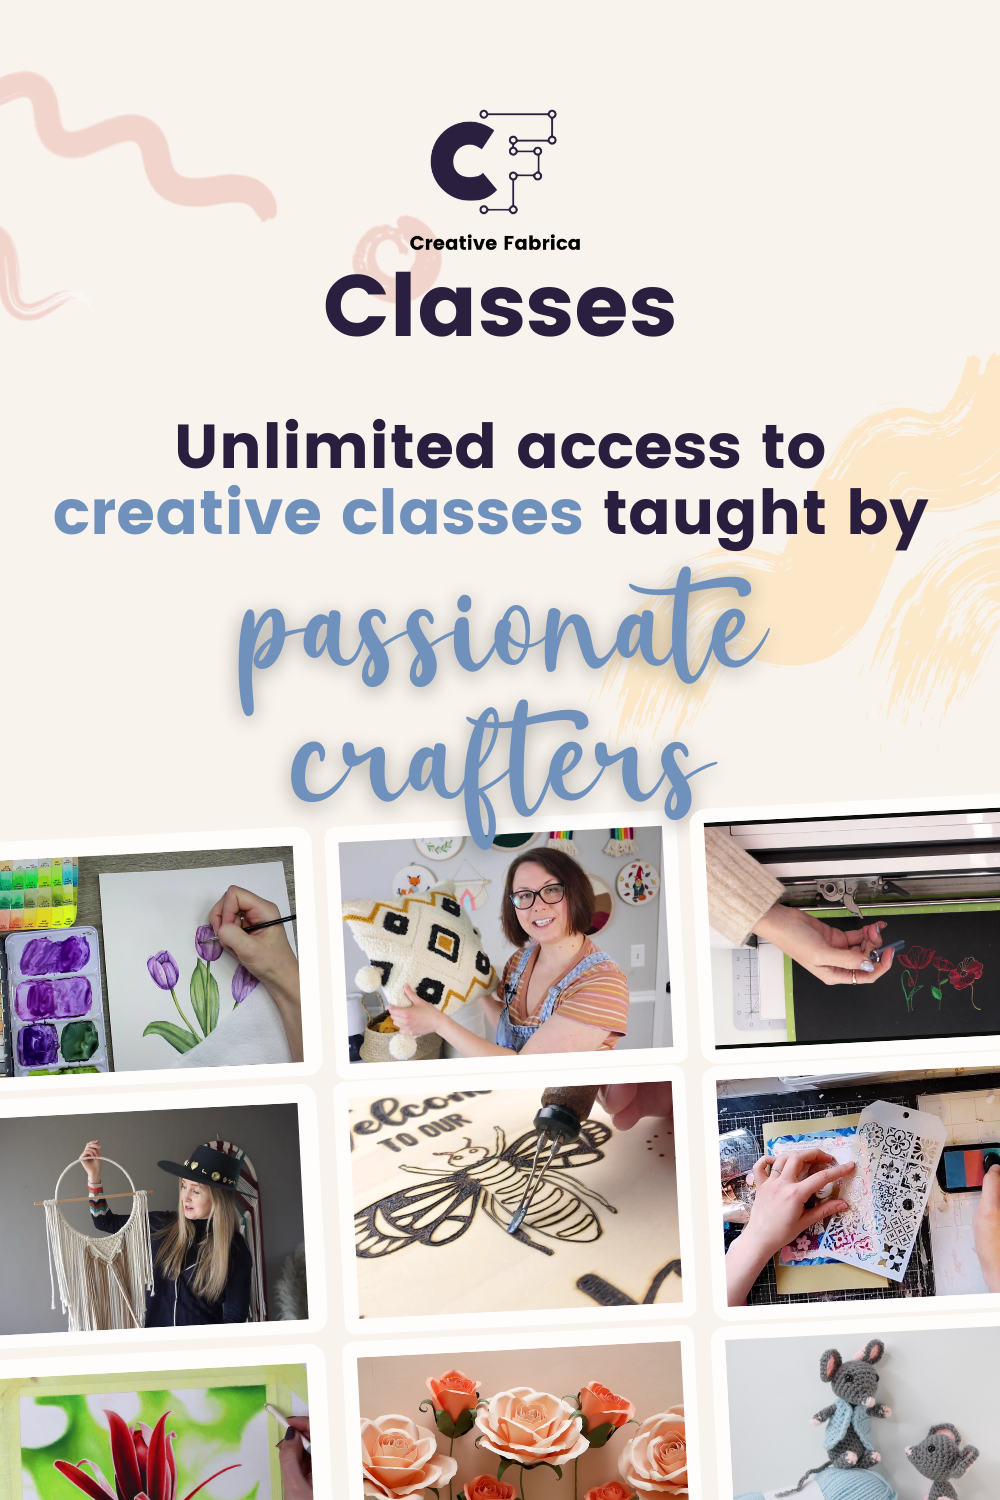 Get all the details on the amazing new craft and sewing classes from Creative Fabrica. So many amazing techniques to learn at one low monthly price, or subscribe to classes and content for a great deal.